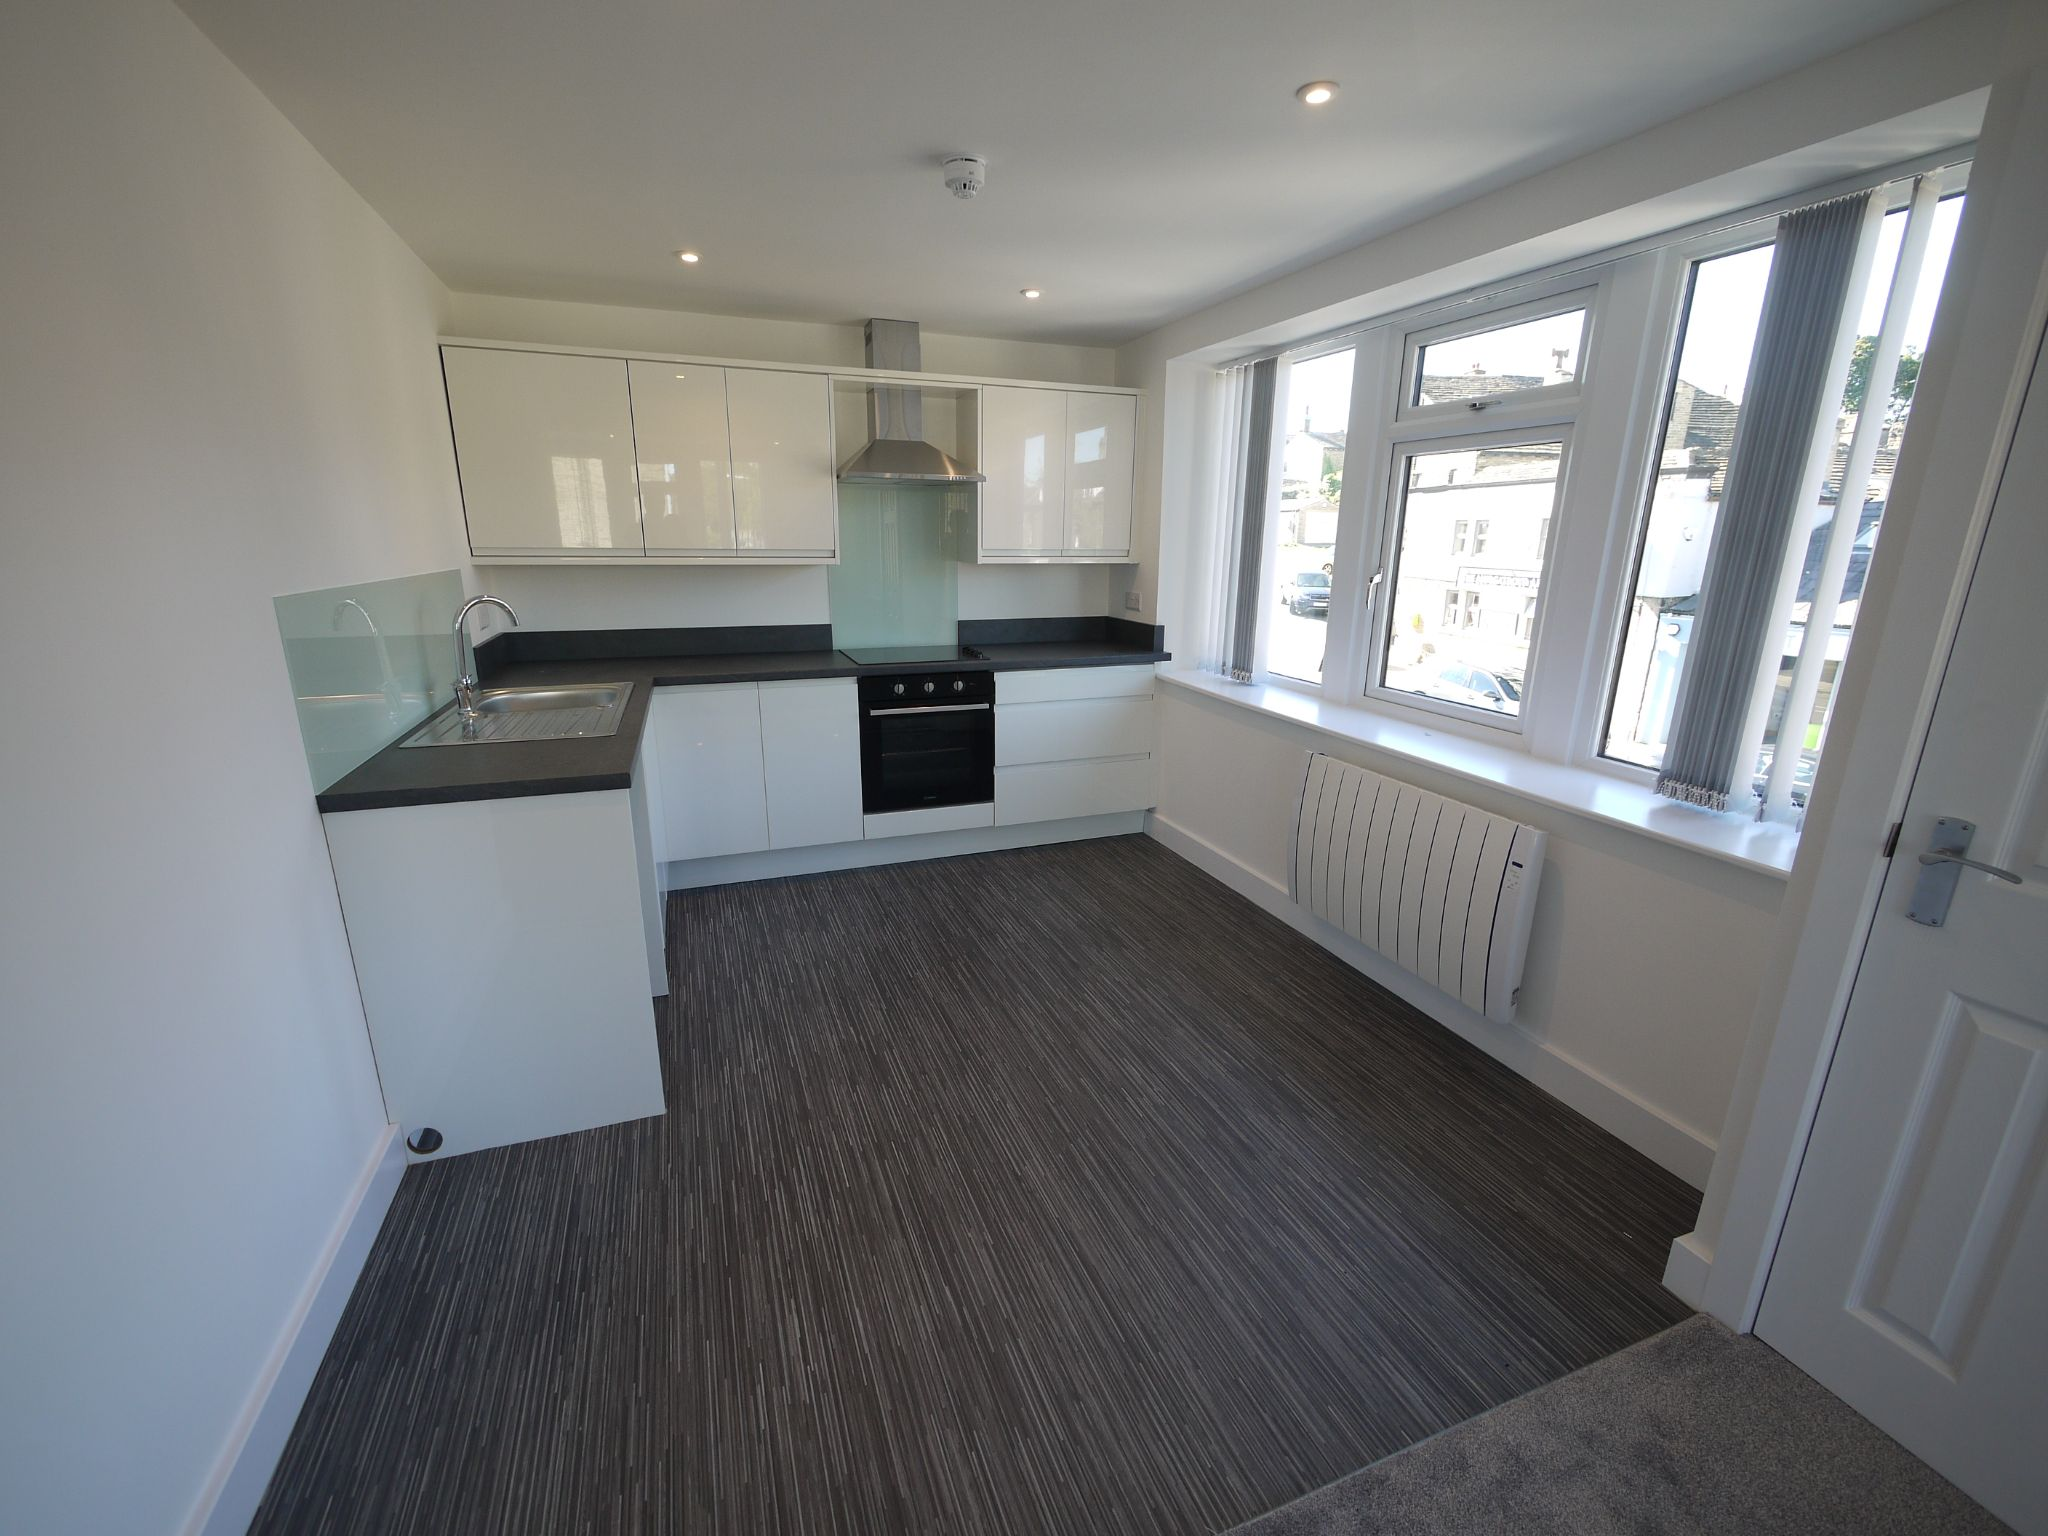 2 bedroom apartment flat/apartment To Let in Halifax - Photograph 2.